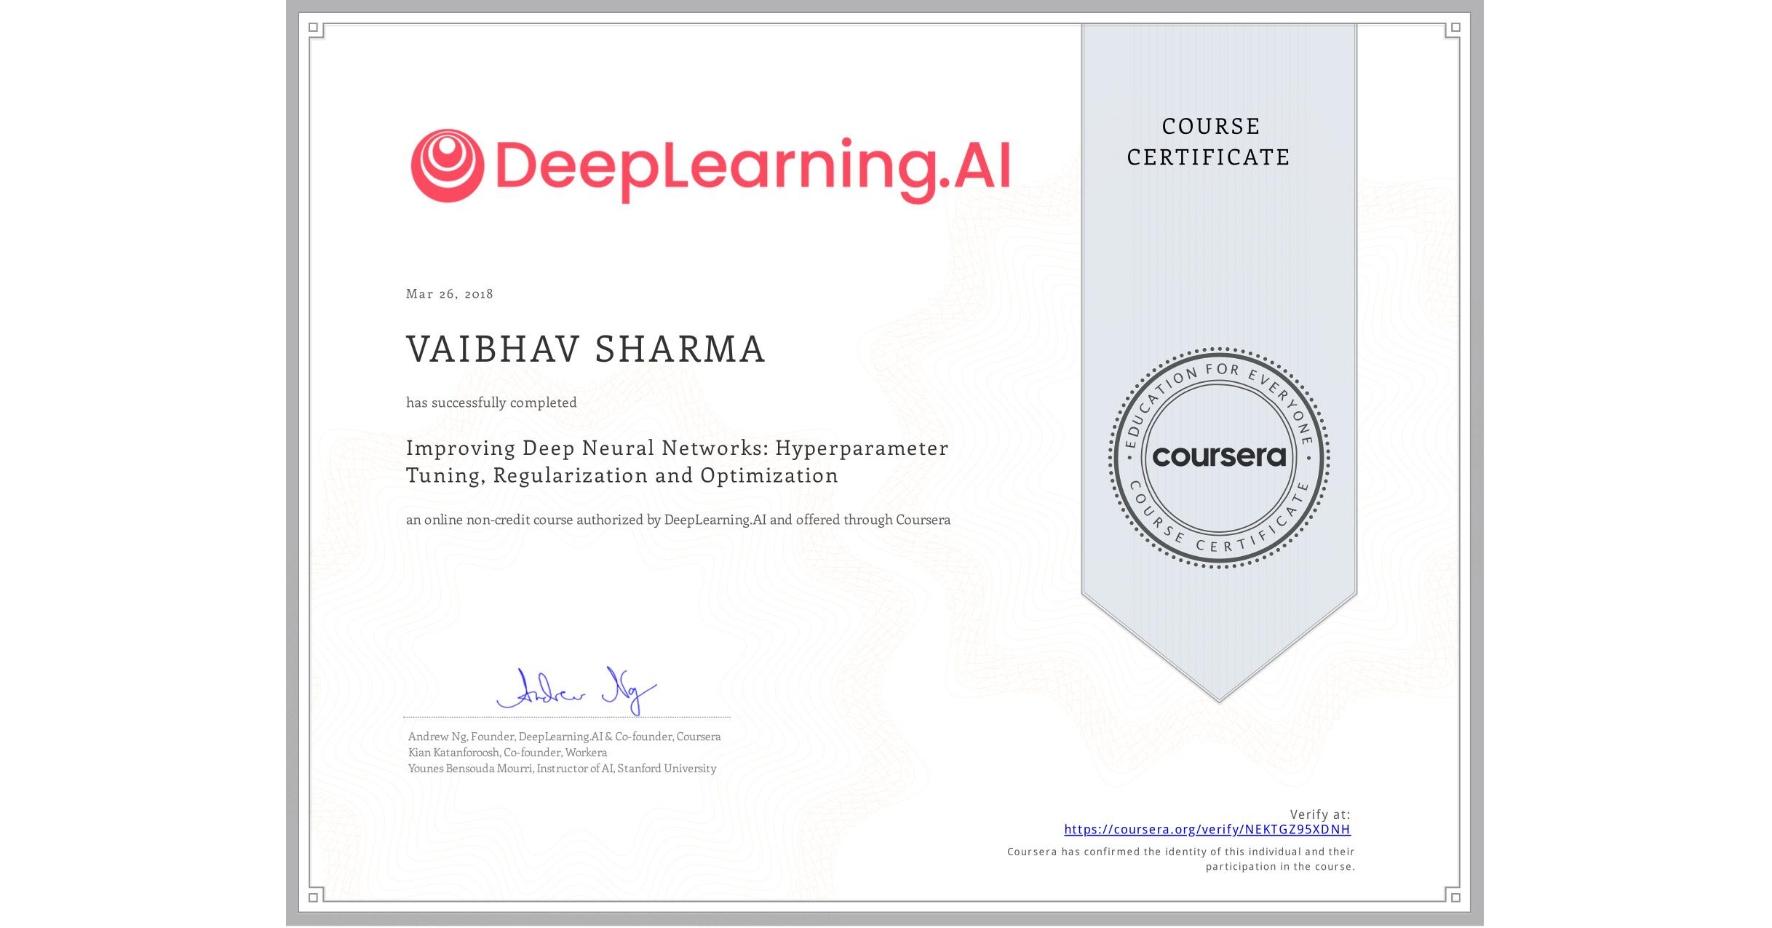 View certificate for VAIBHAV SHARMA, Improving Deep Neural Networks: Hyperparameter Tuning, Regularization and Optimization, an online non-credit course authorized by DeepLearning.AI and offered through Coursera